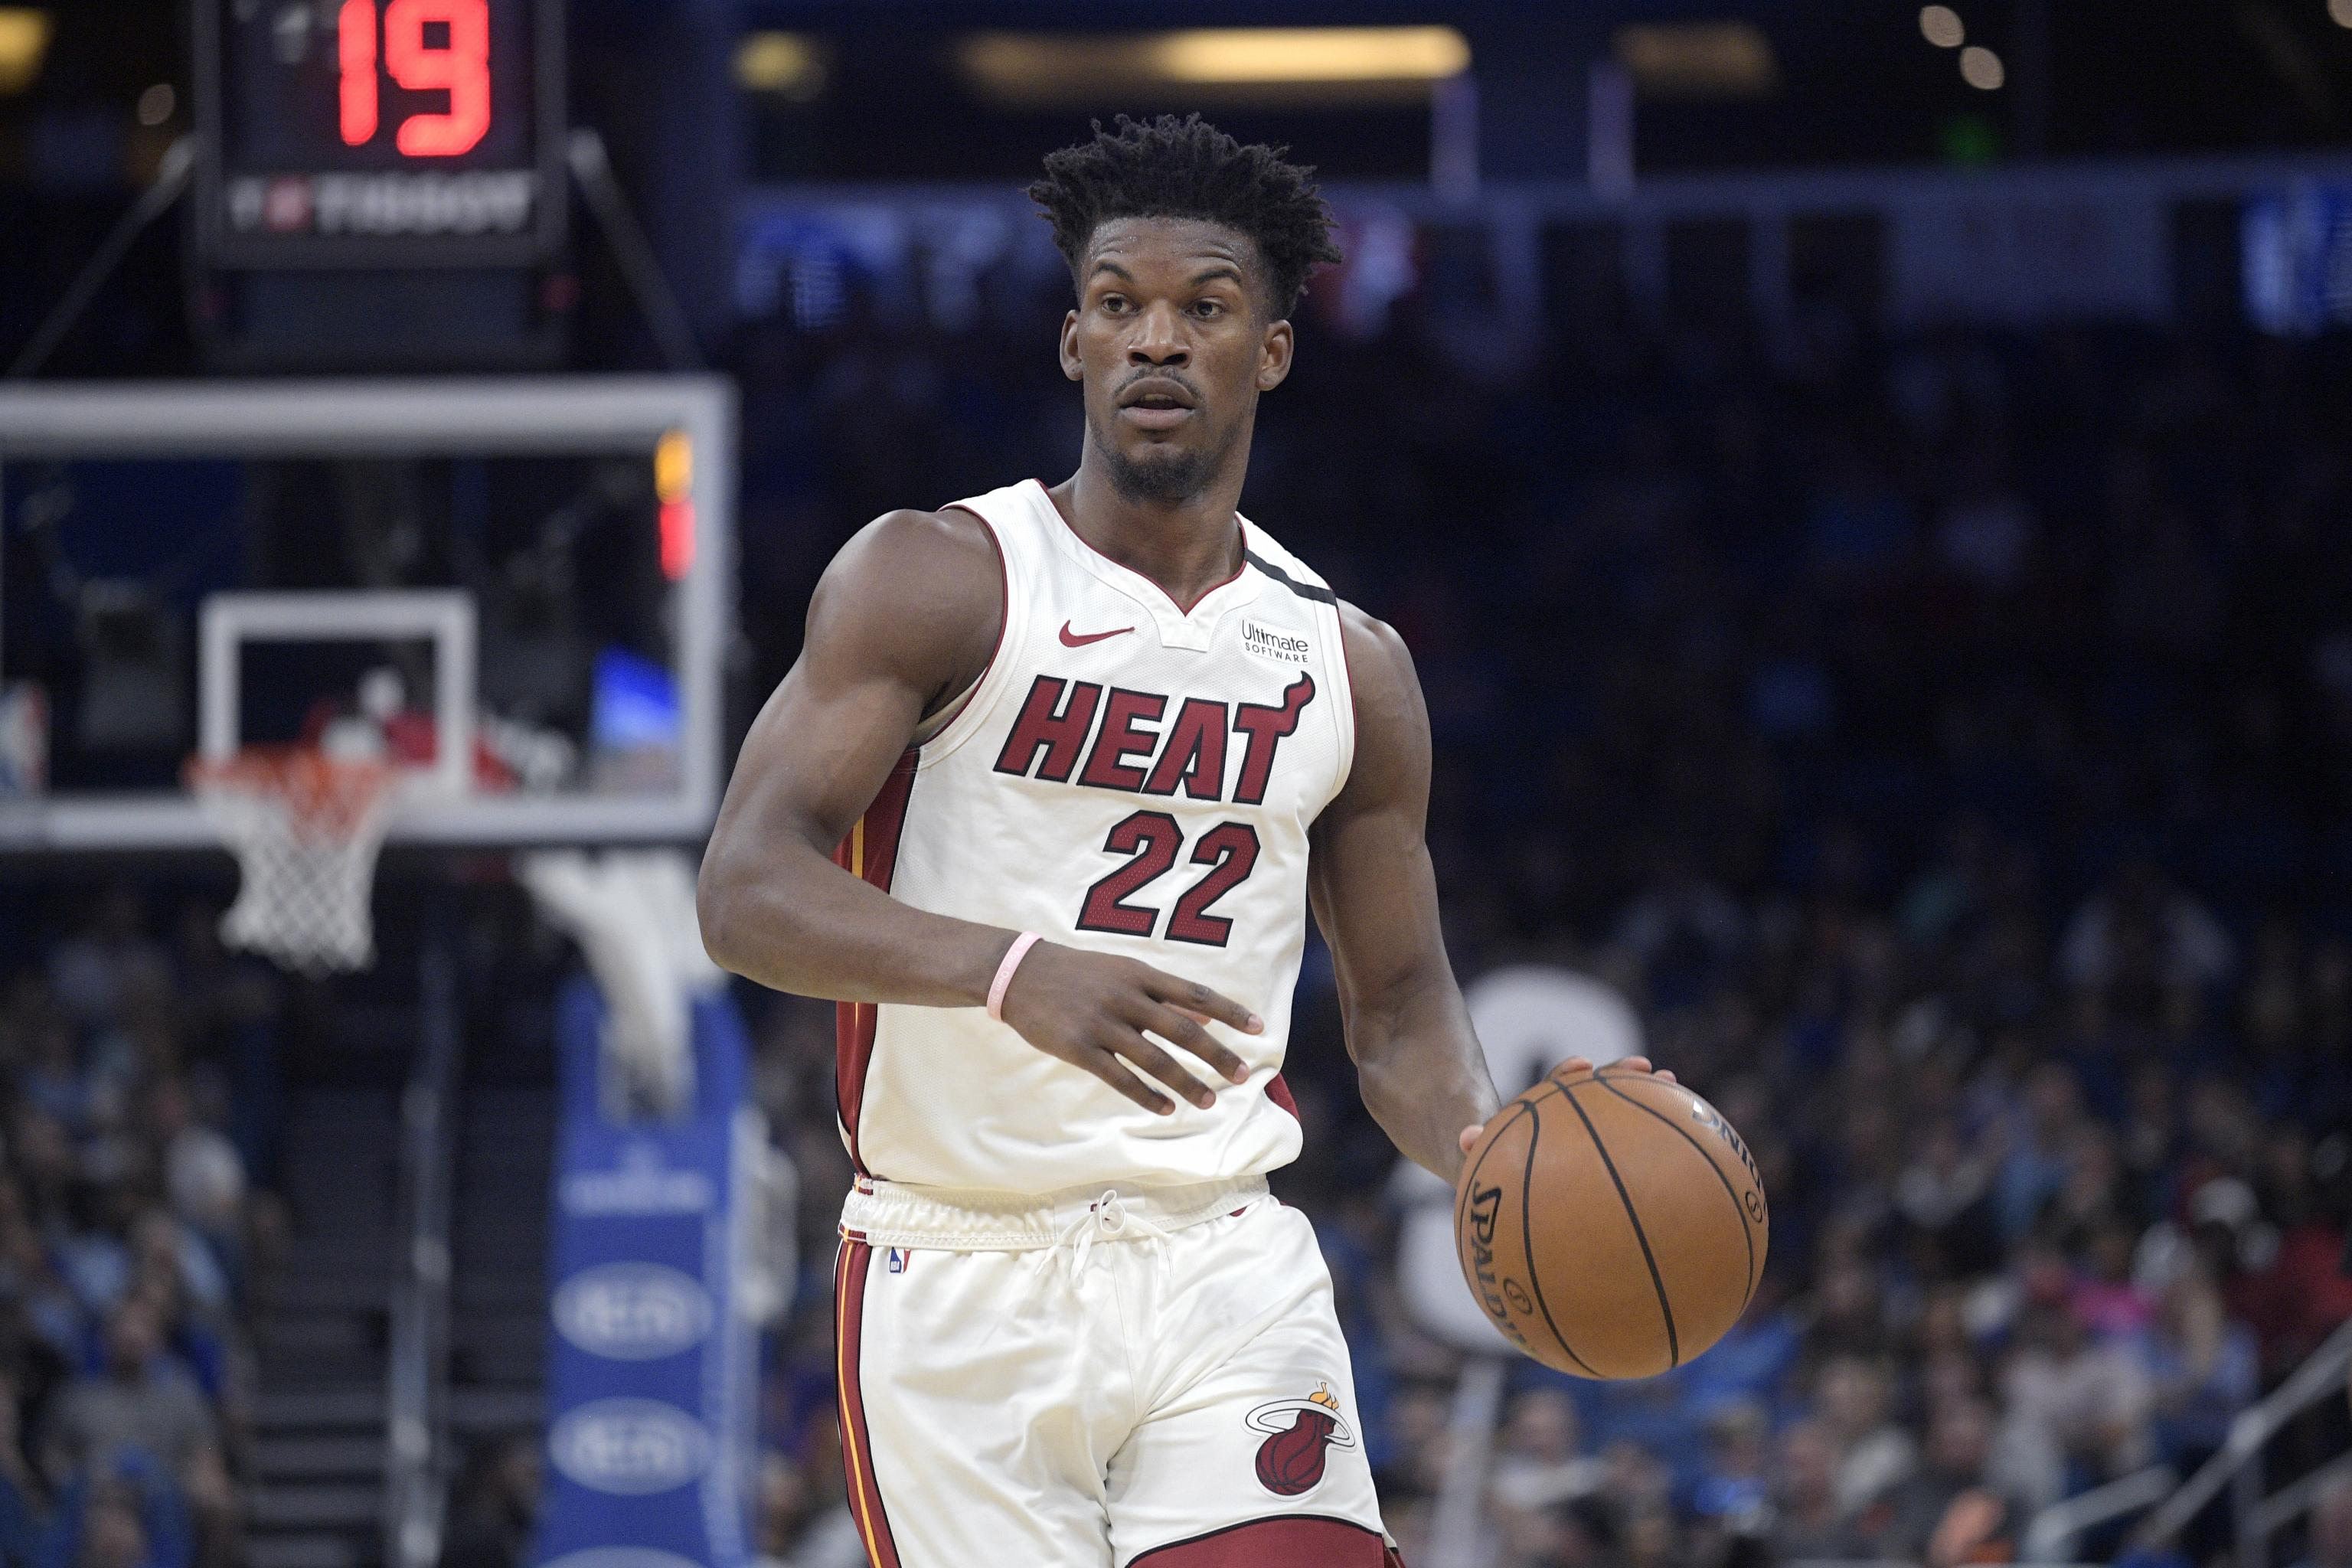 Jimmy Butler Out For Heat S Game Vs Kings With Hip Injury Bleacher Report Latest News Videos And Highlights